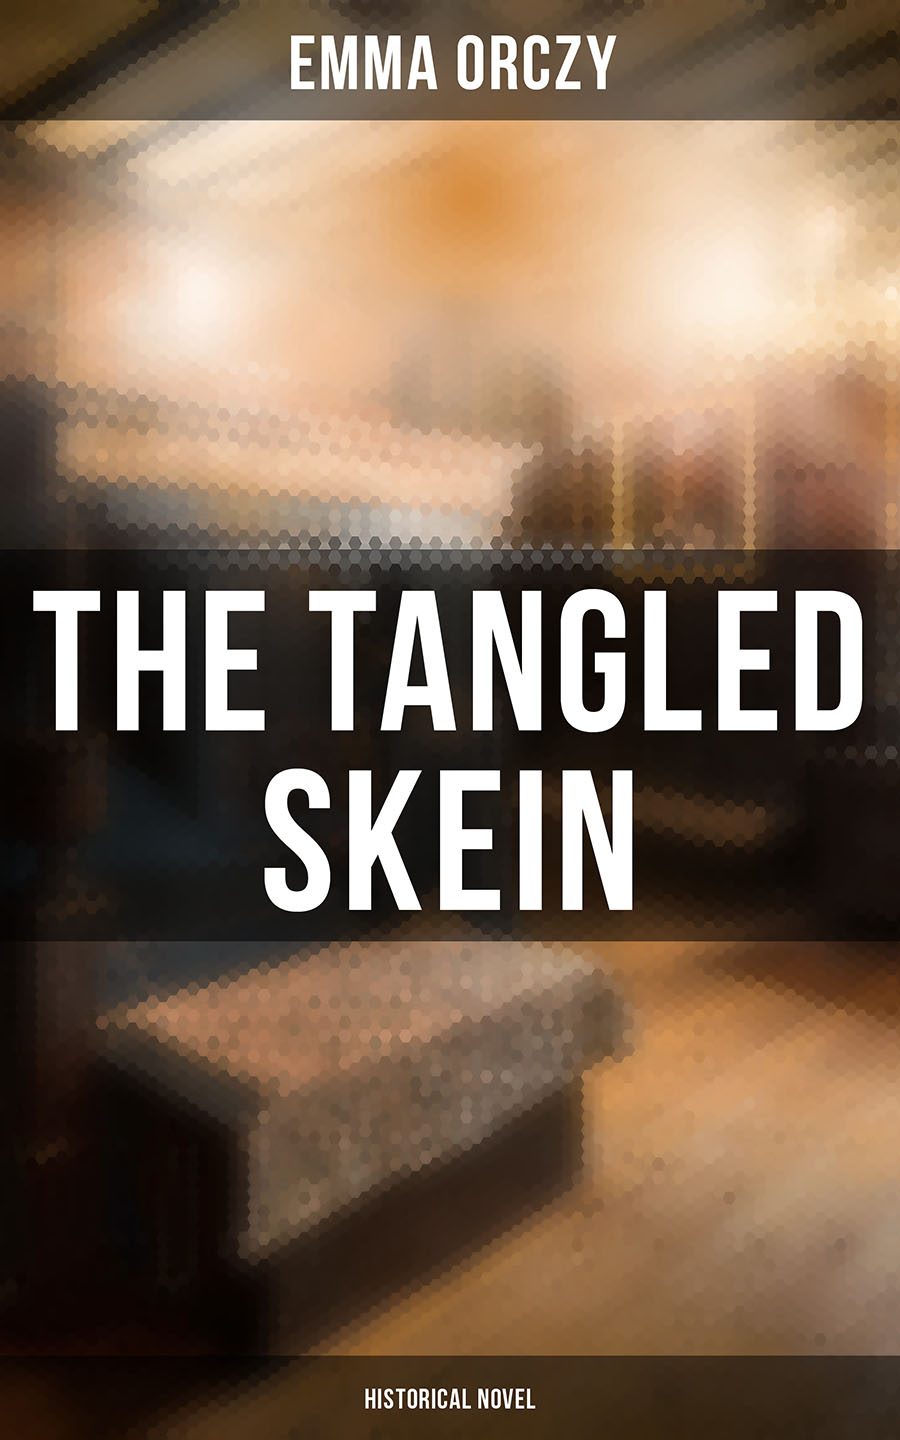 Emma Orczy The Tangled Skein: Historical Novel emma orczy the tangled skein